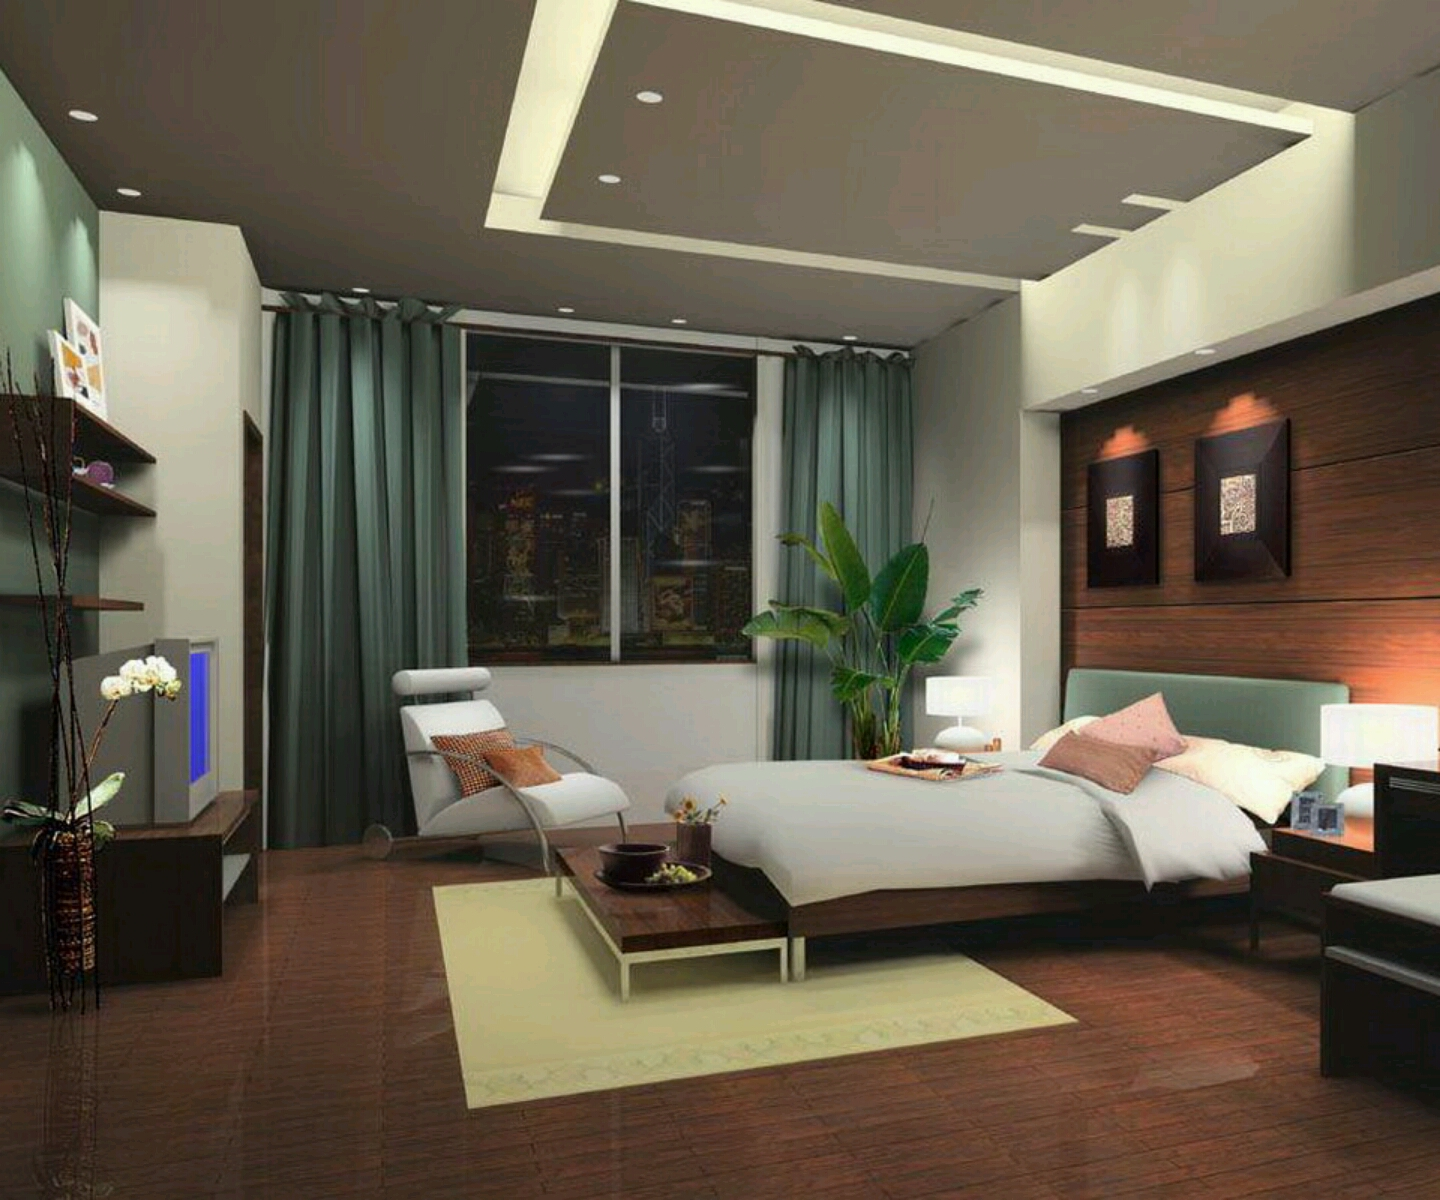 New home designs latest modern bedrooms designs best ideas for Bedroom decoration designs